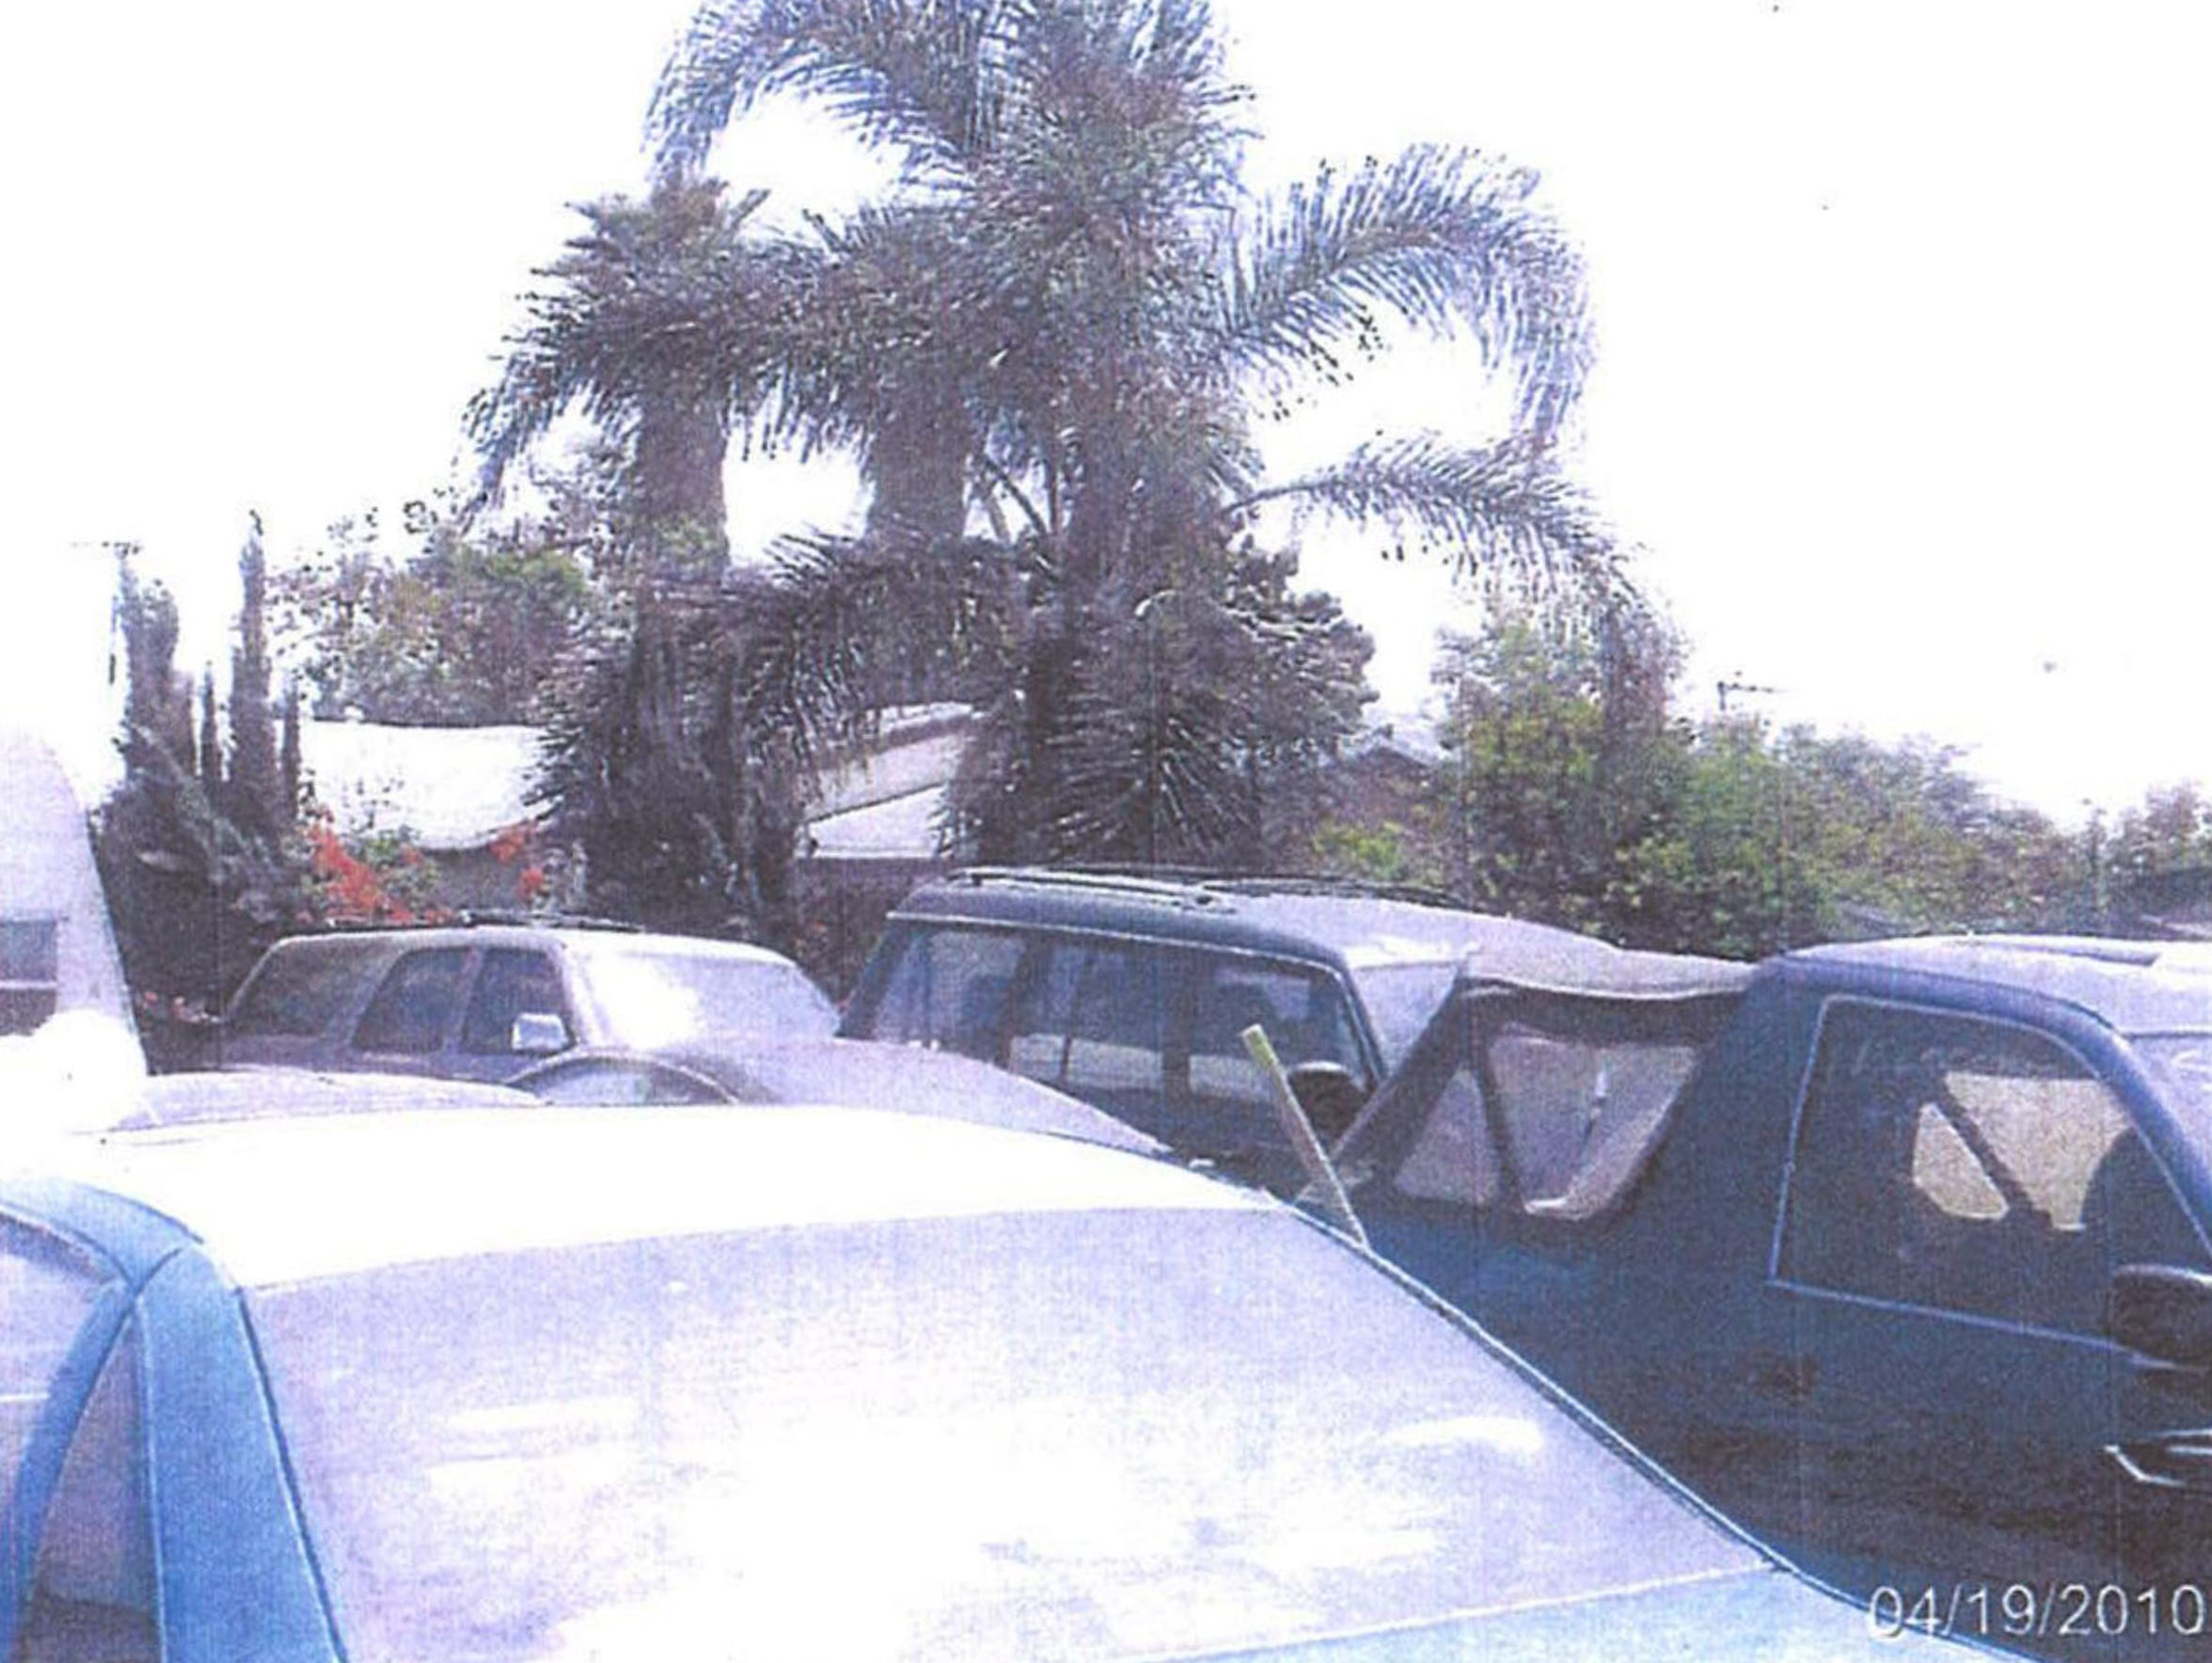 Cars are stockpiled at an illegal scrapyard on Peter